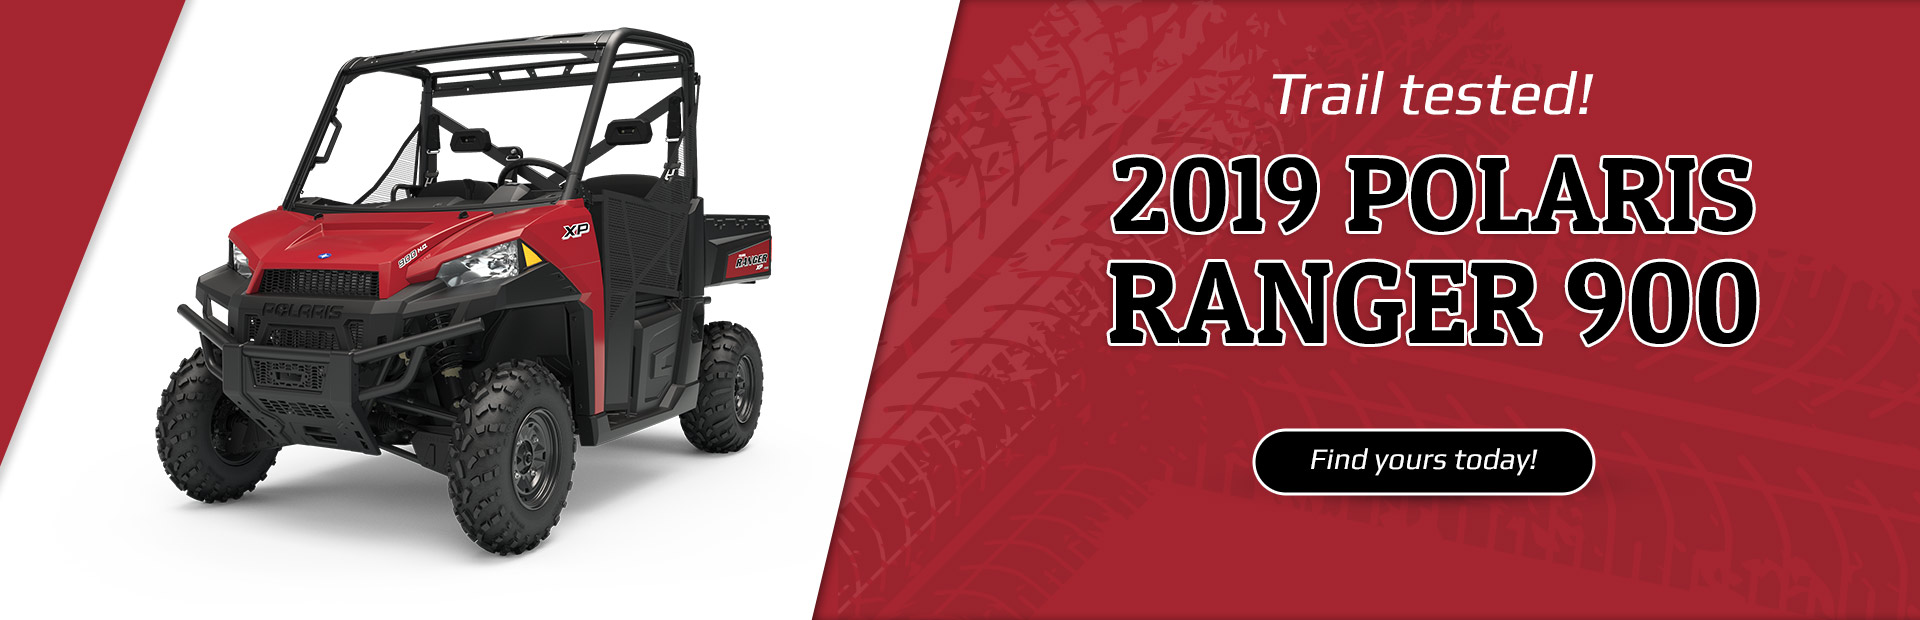 Trail tested! 2019 Polaris Ranger 900. Click here to find yours today!